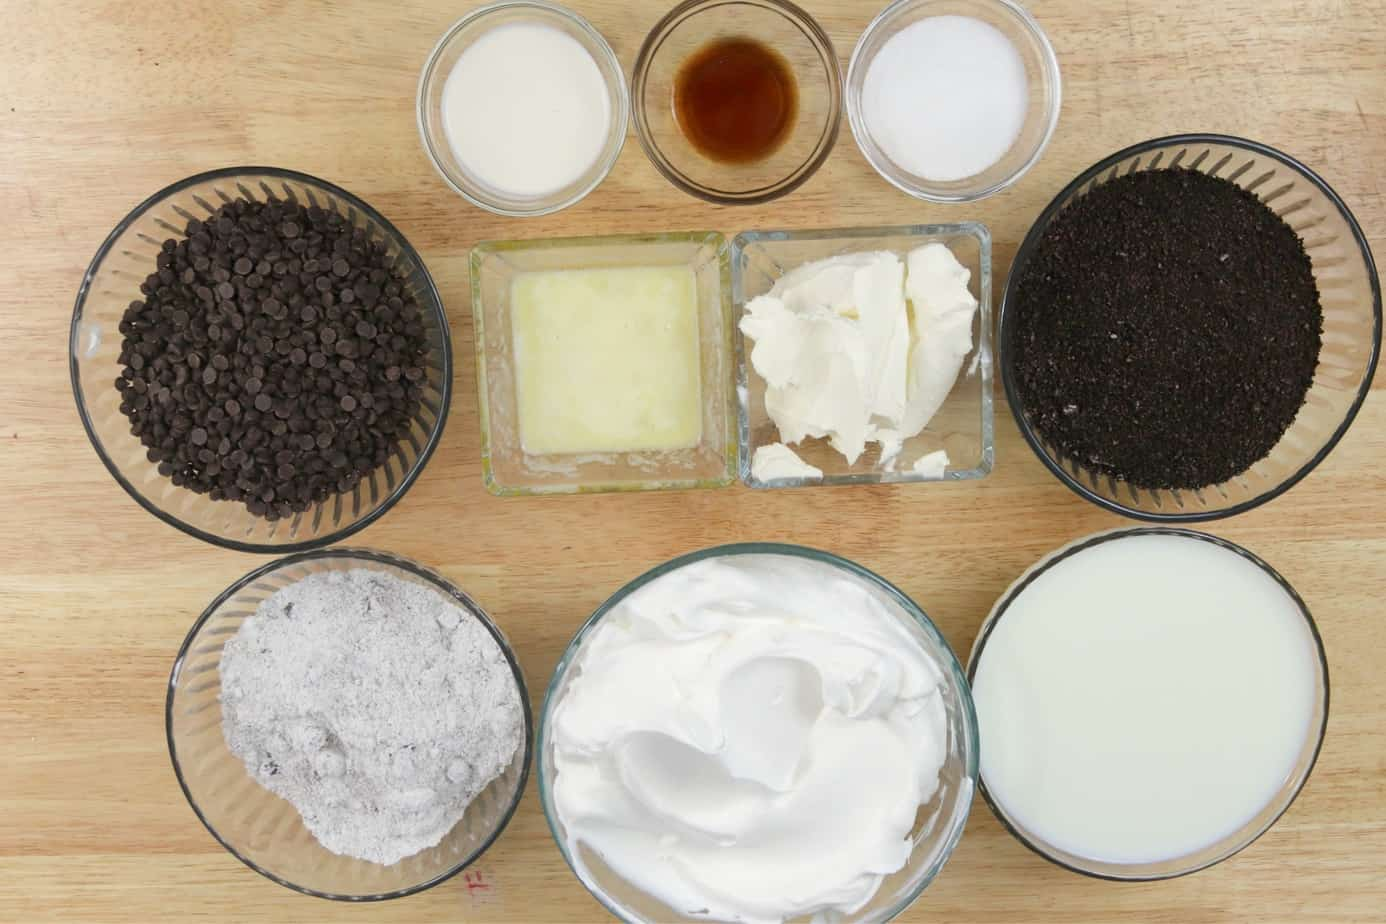 oreo chocolate lasagna ingredients in glass bowls